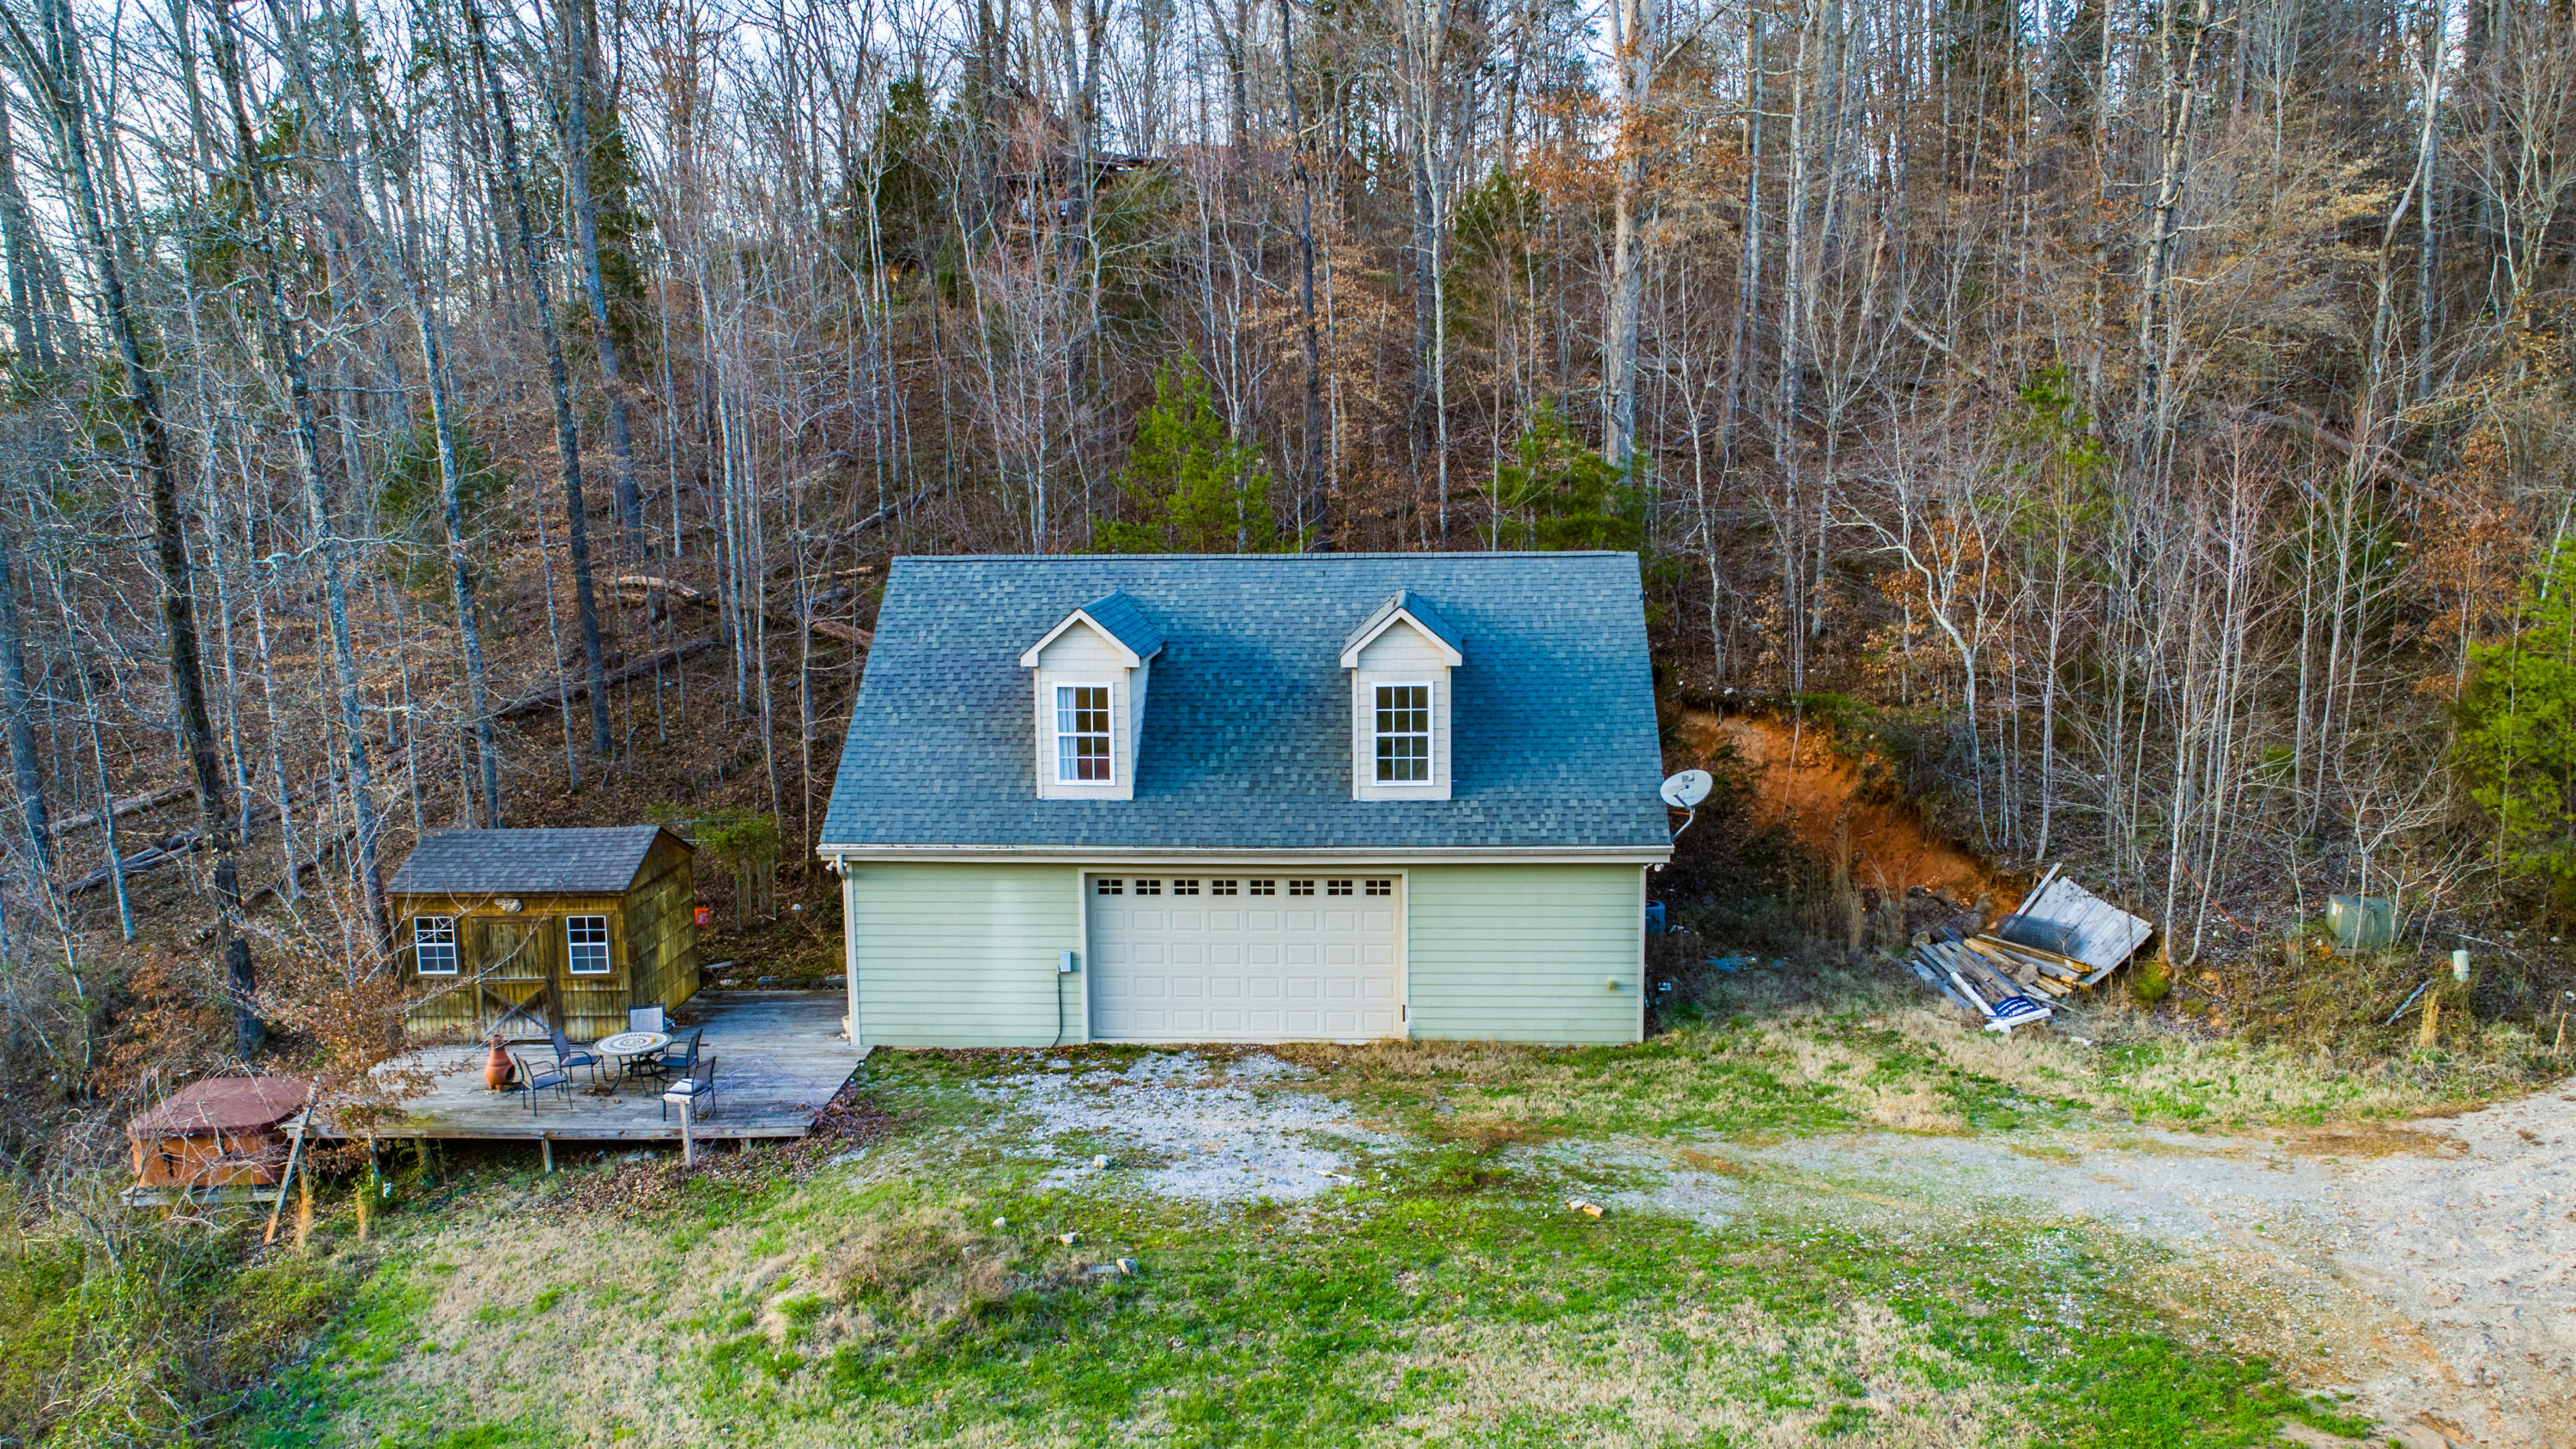 11433 N. Couch Mill Rd, Knoxville, TN 37931